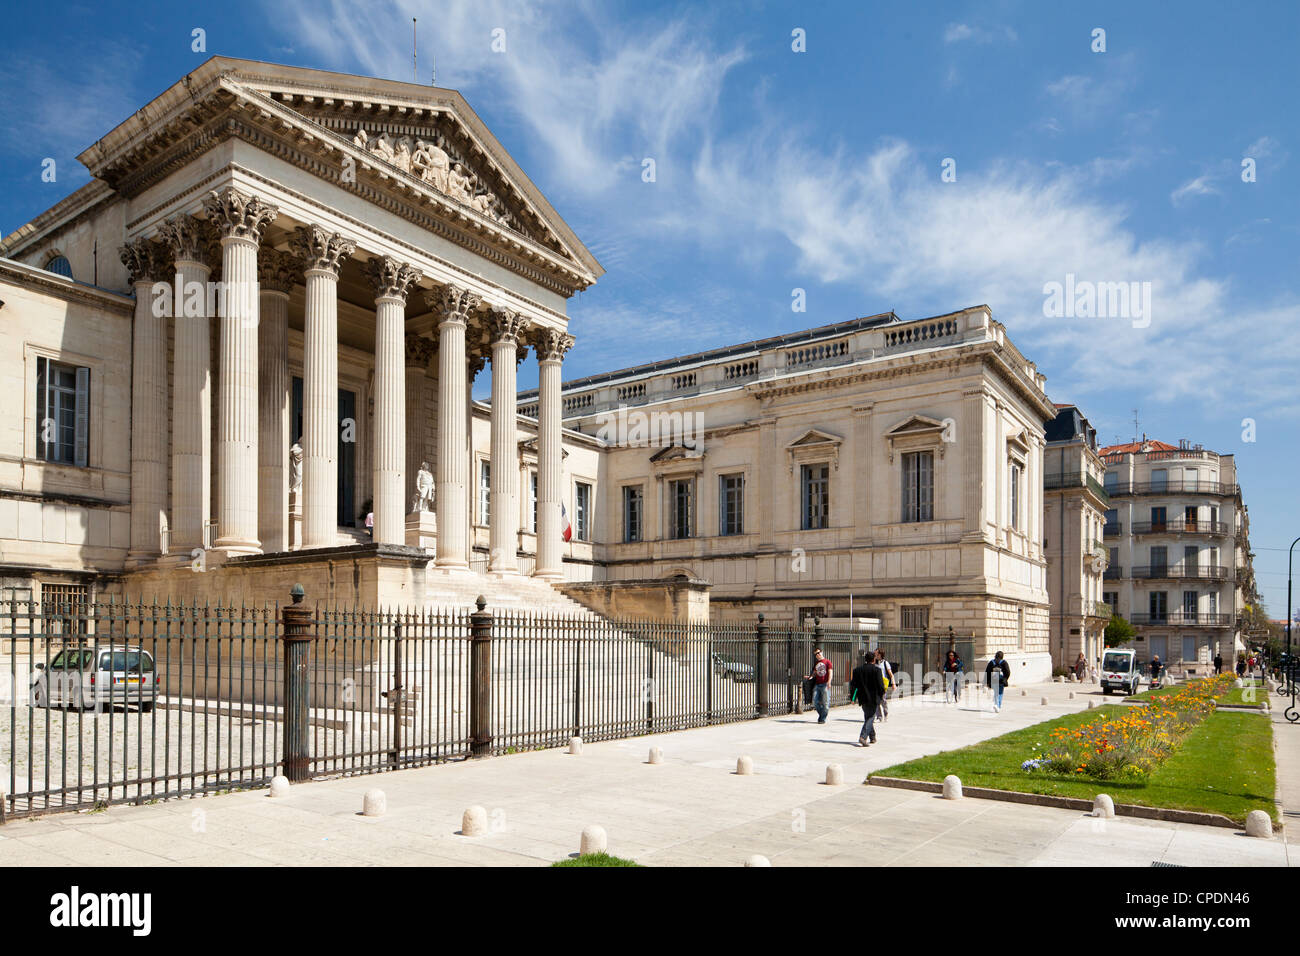 The Neoclassical Palais de Justice, Rue Foch, Montpellier, Languedoc-Roussillon, France, Europe Stock Photo